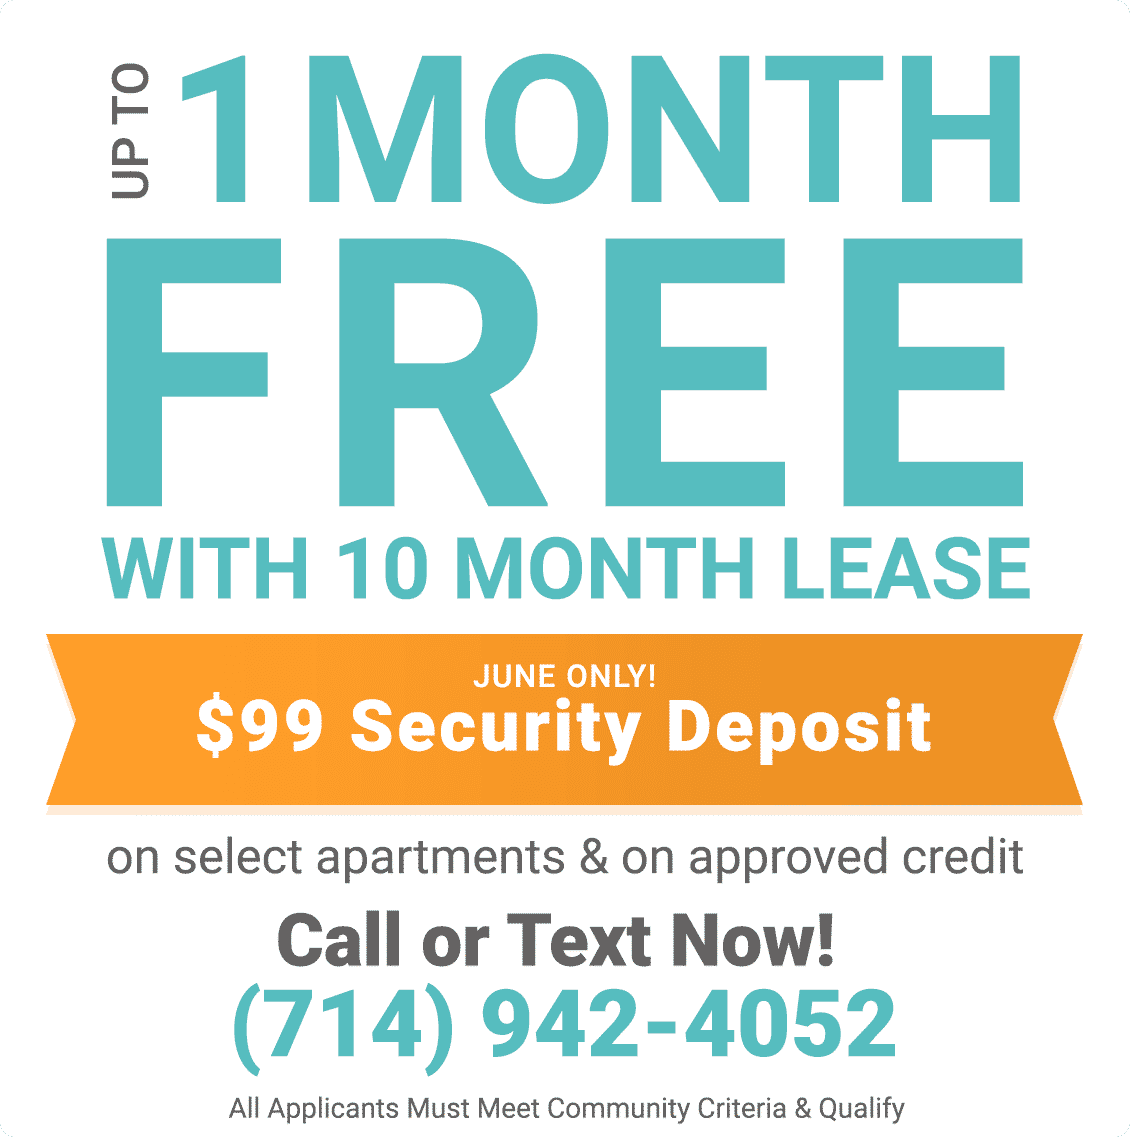 Up to 1 month free with 10 month lease on select apartments. $99 Security Deposit on approved credit